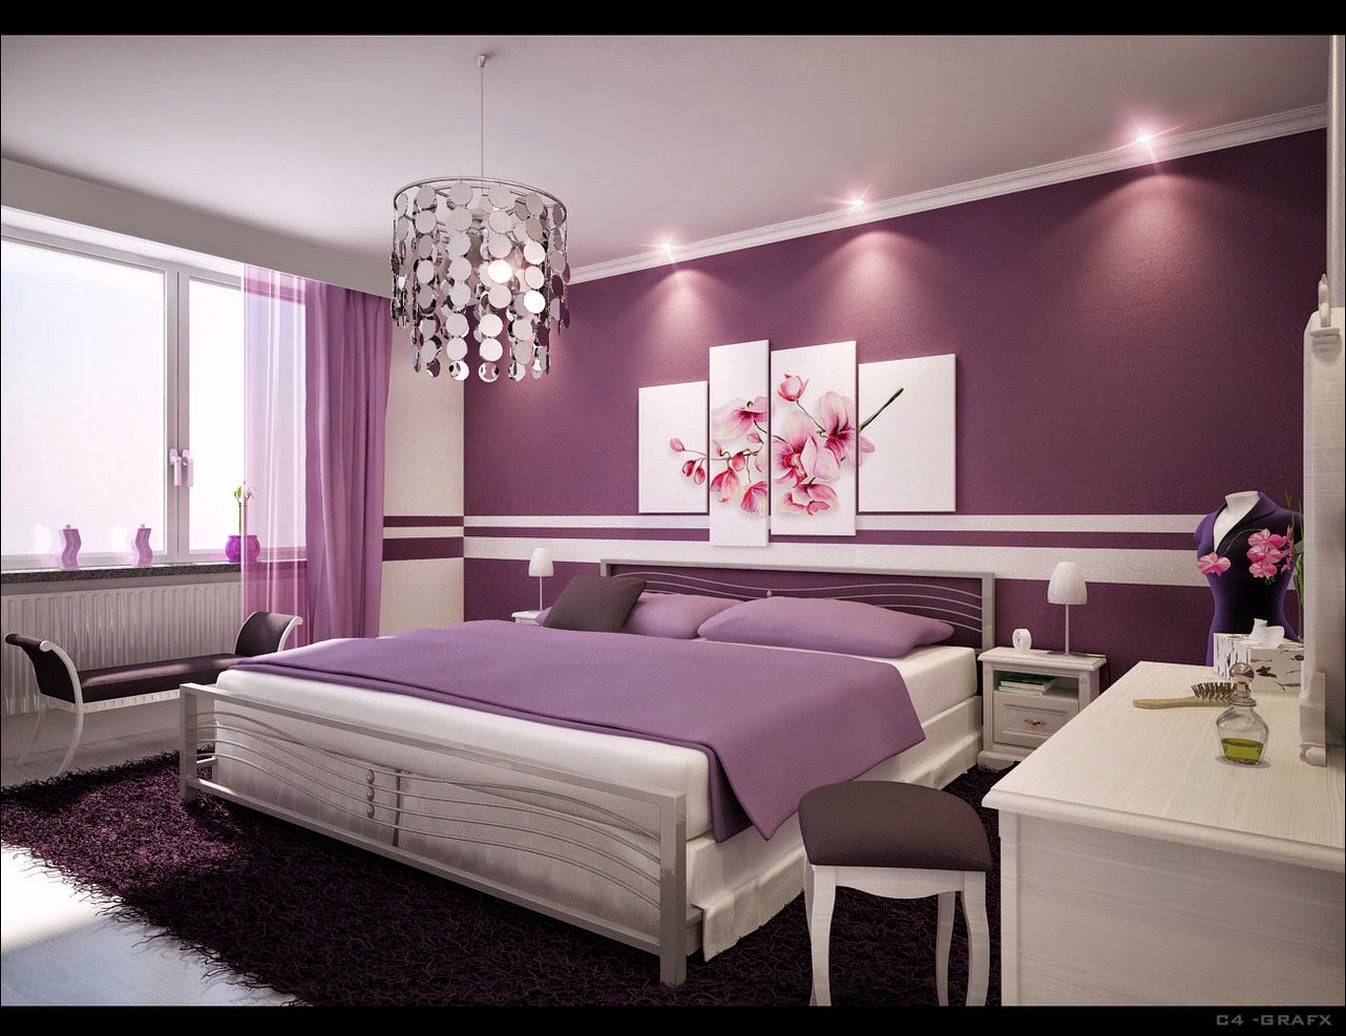 Beautiful bedroom design free download wallpaper for Stunning bedroom wallpaper